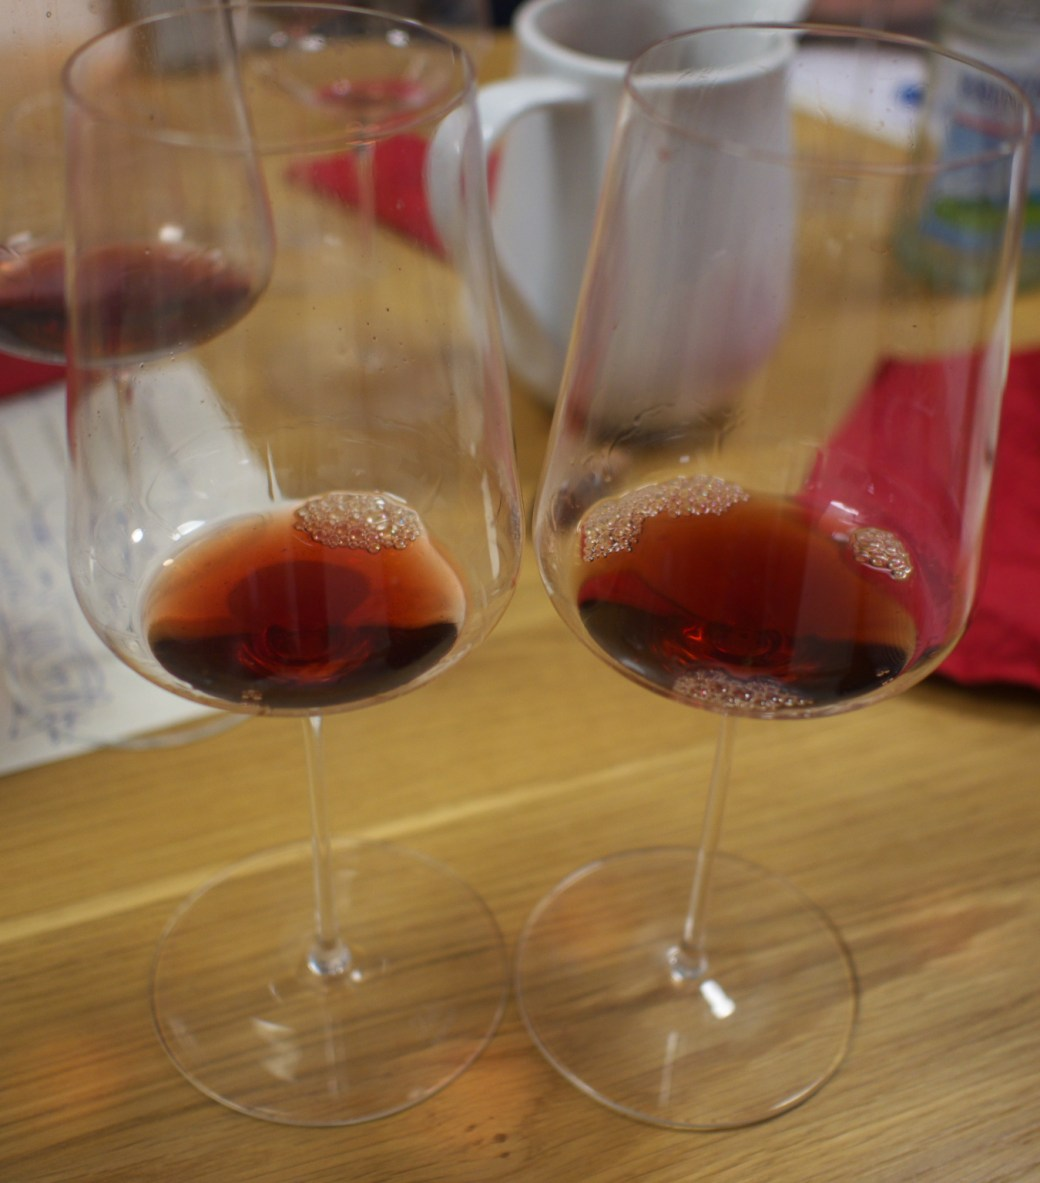 Two glasses of Giacosa